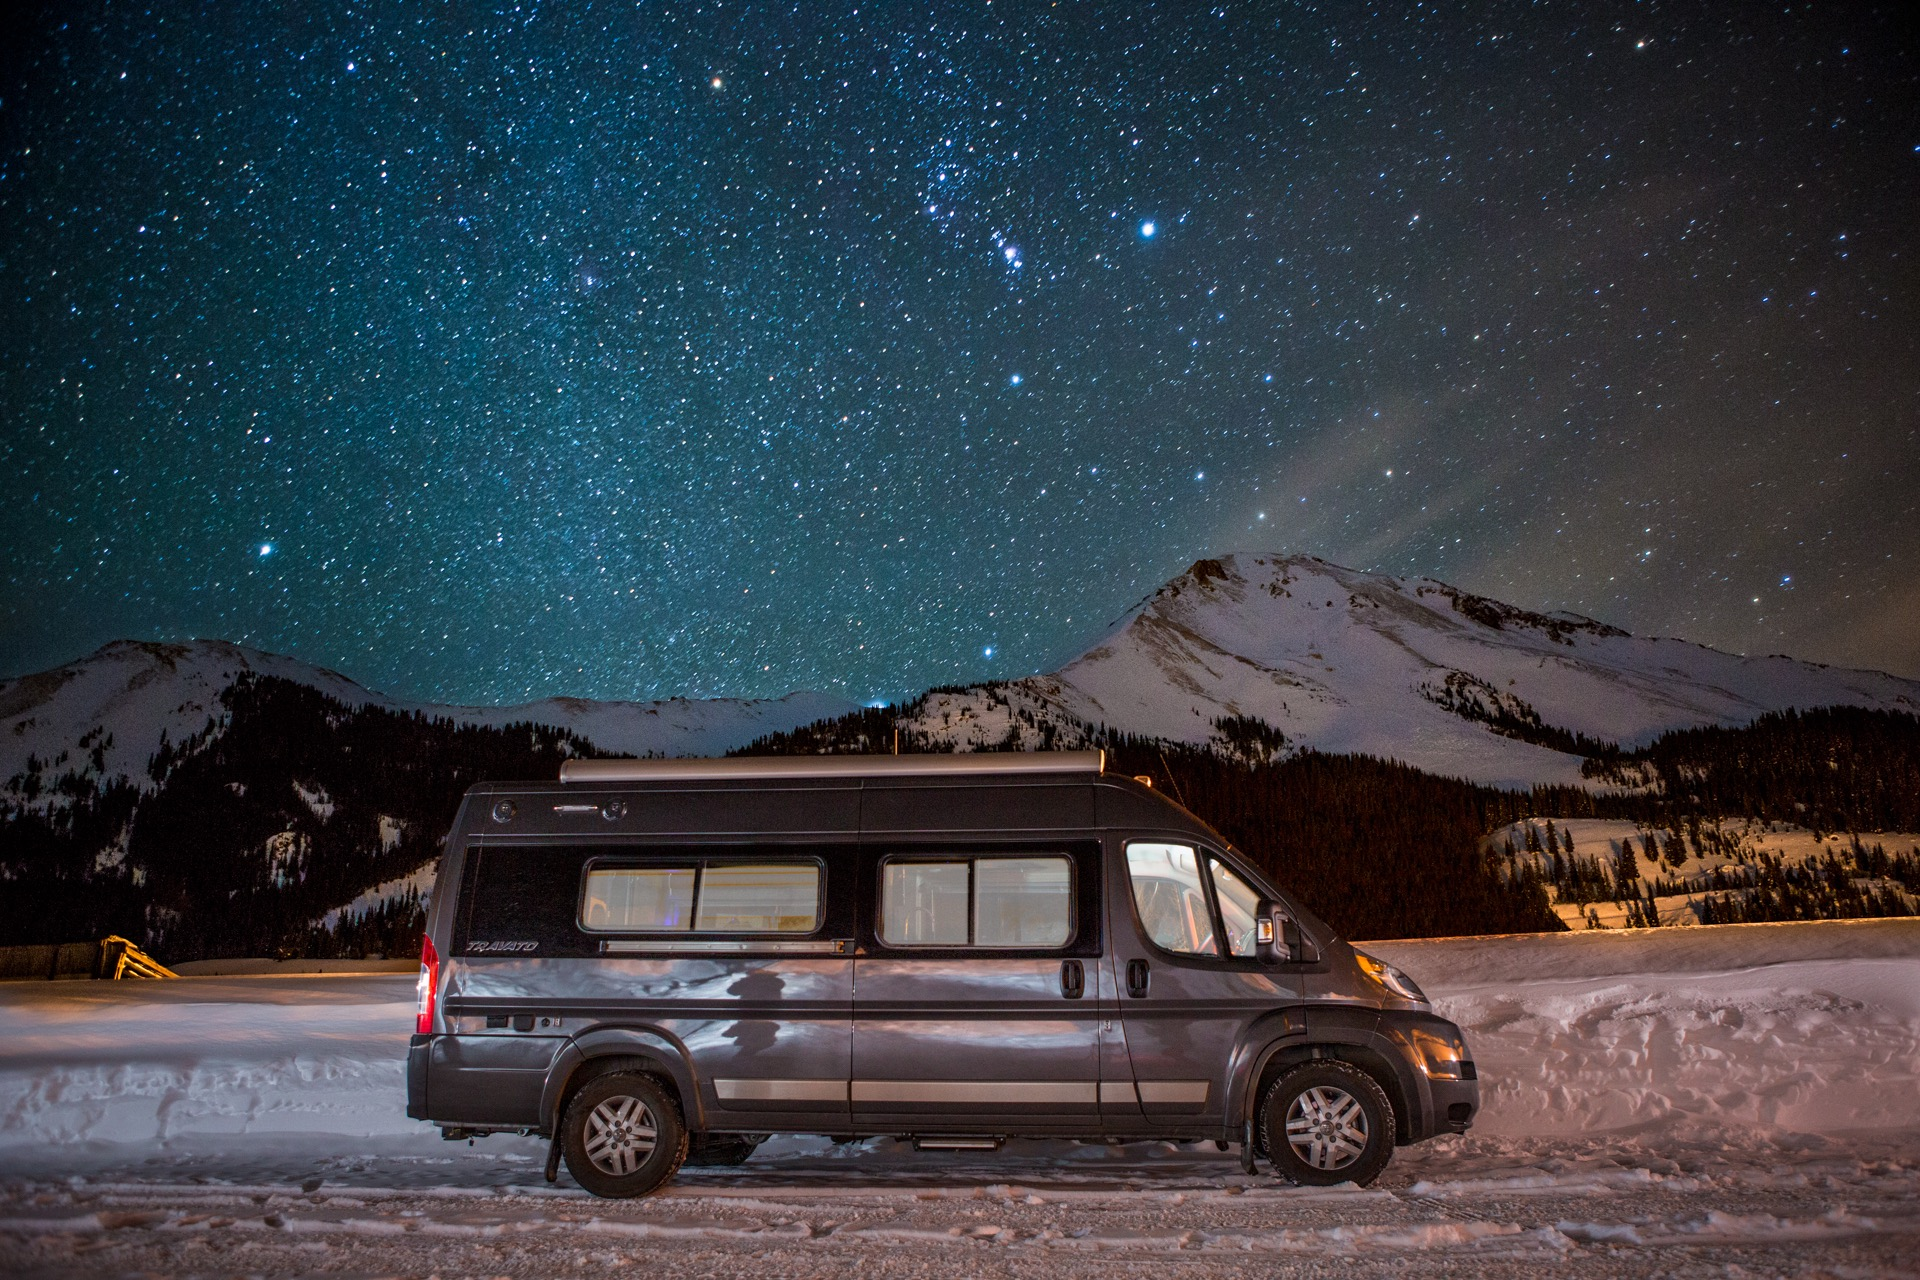 Winnebago Travato in snow covered parking lot with mountains in the background and a star-filled night sky overhead.